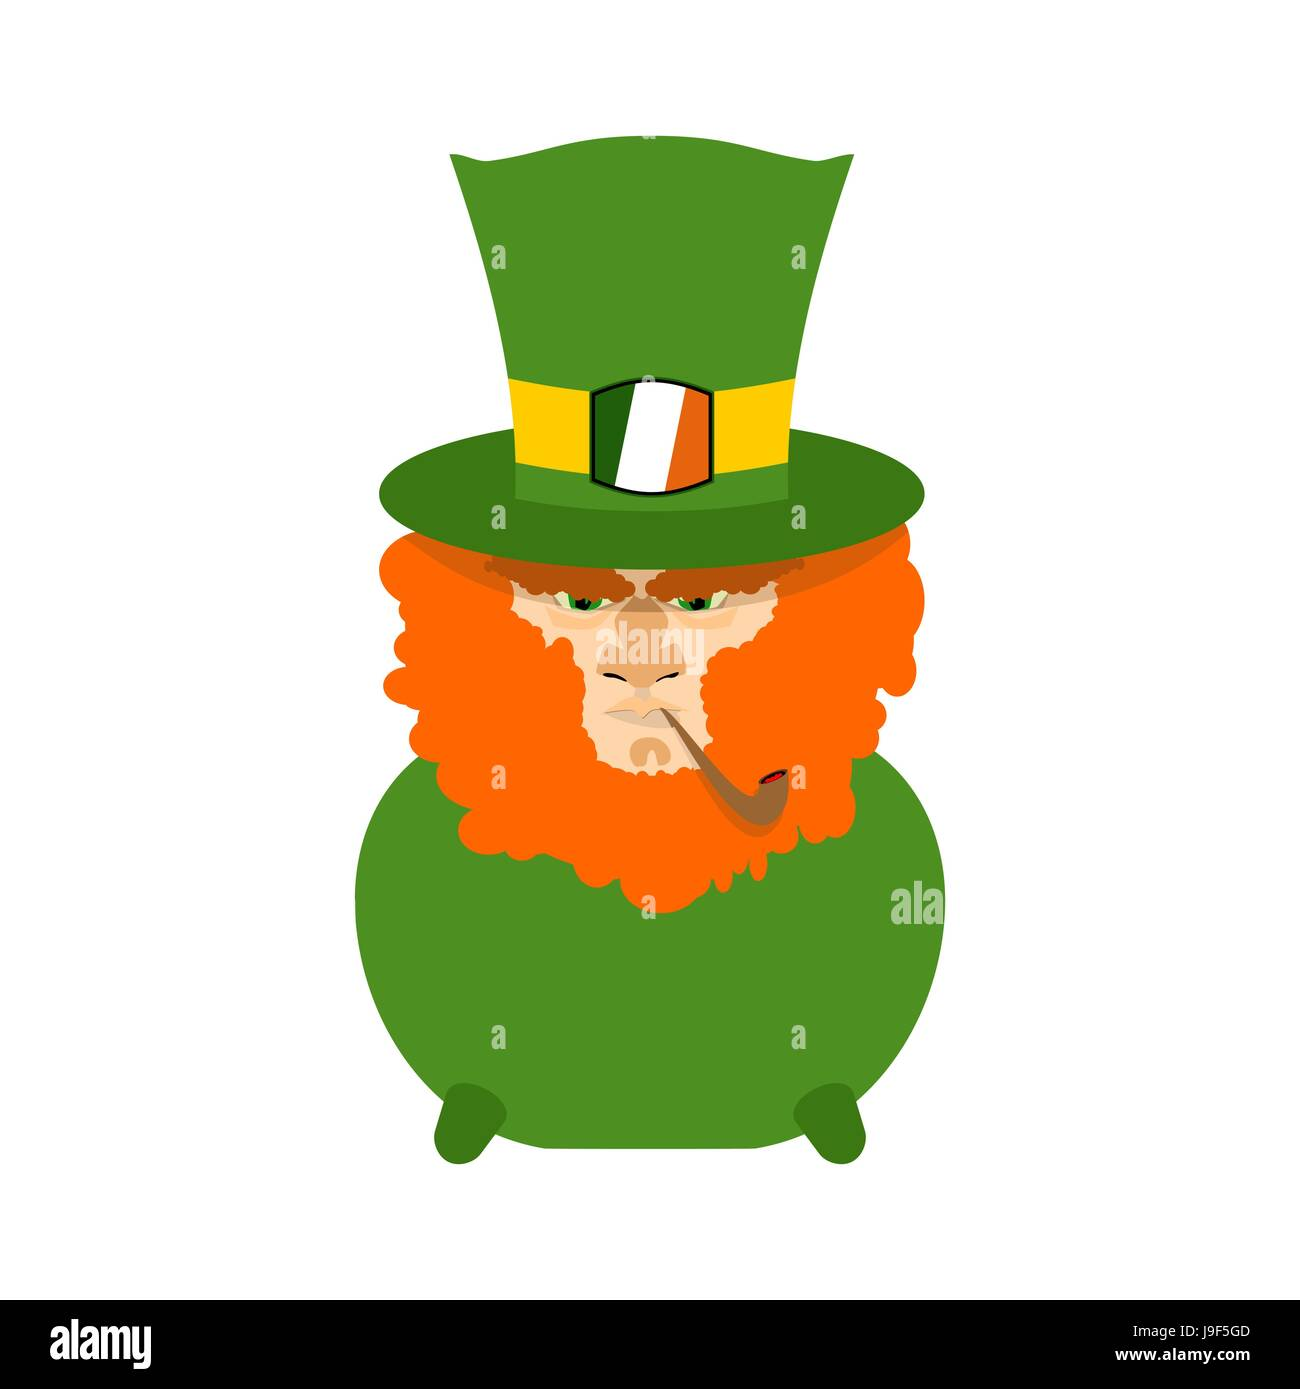 Uncategorized Leprechaun Pot leprechaun with red beard in pot st patricks day character irish holiday